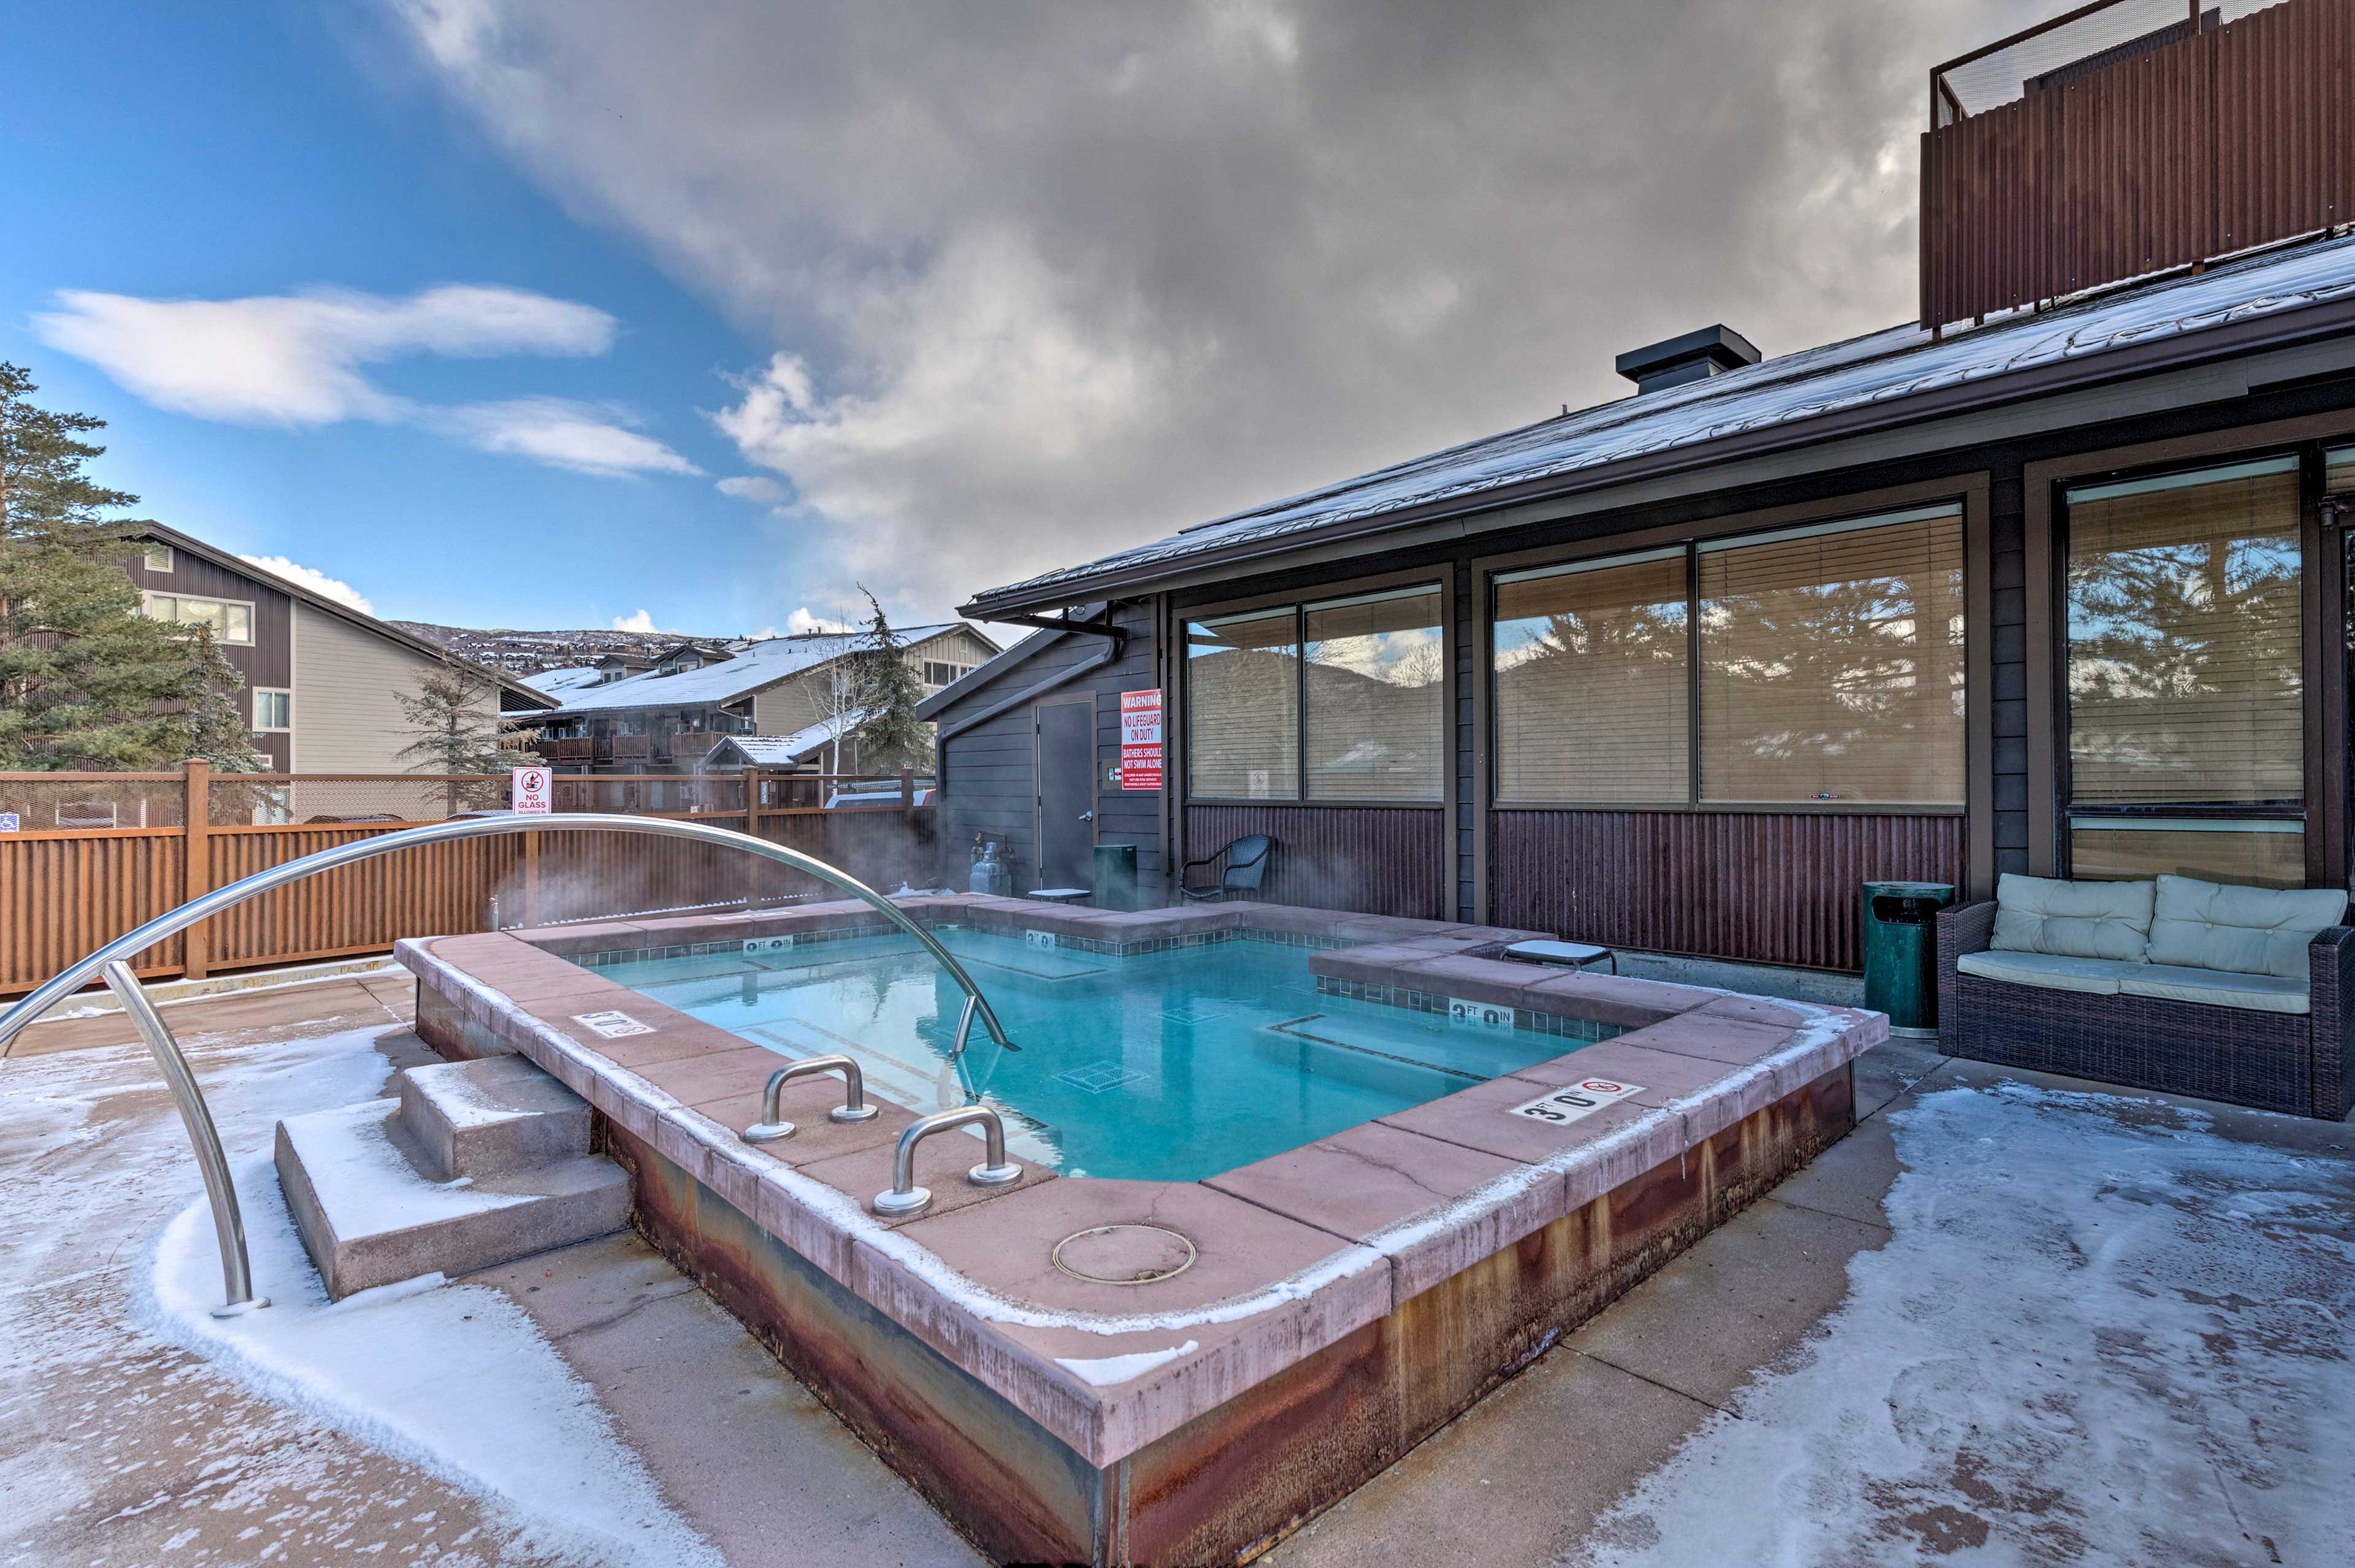 Soothe sore ski muscles with a dip in the hot tub.